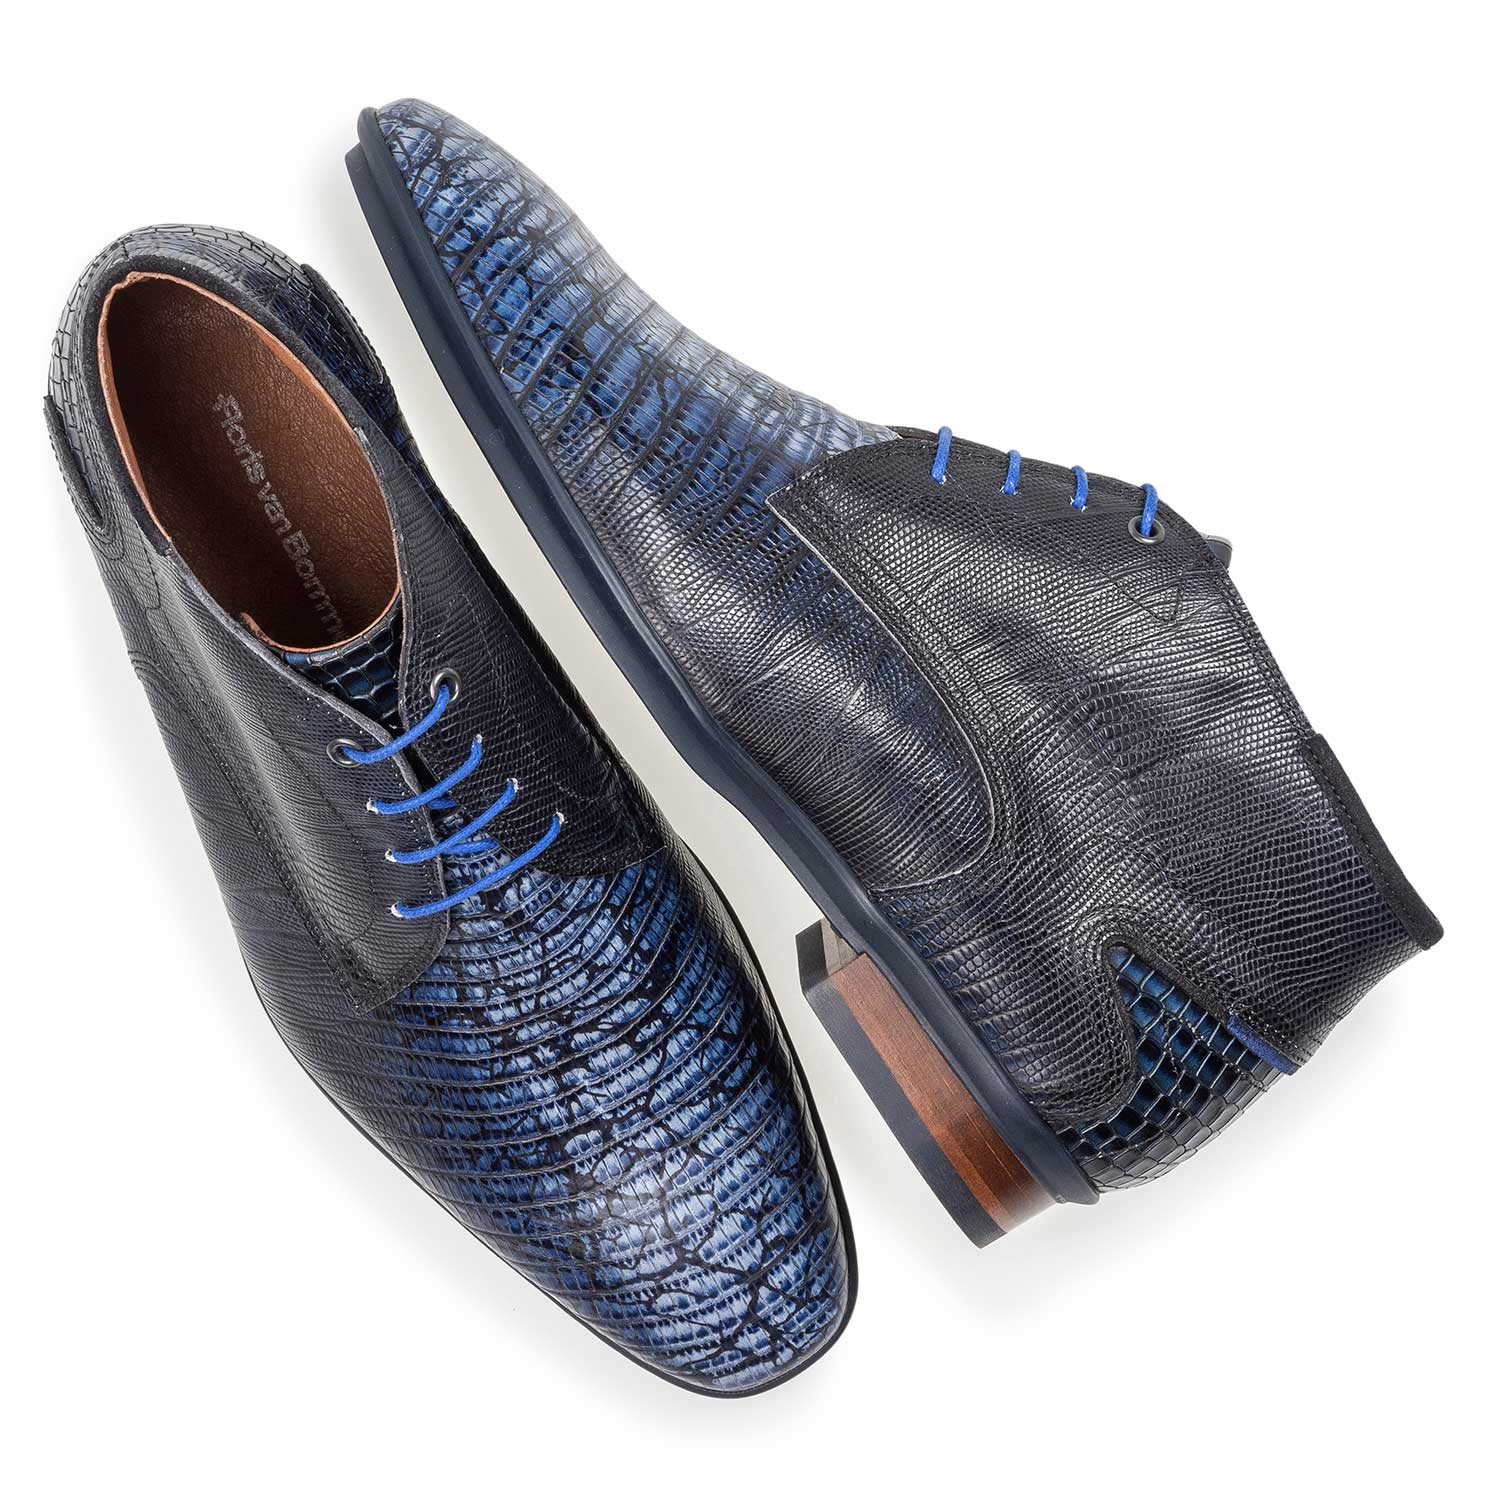 10131/12 - Blue calf leather lace shoe with lizard print